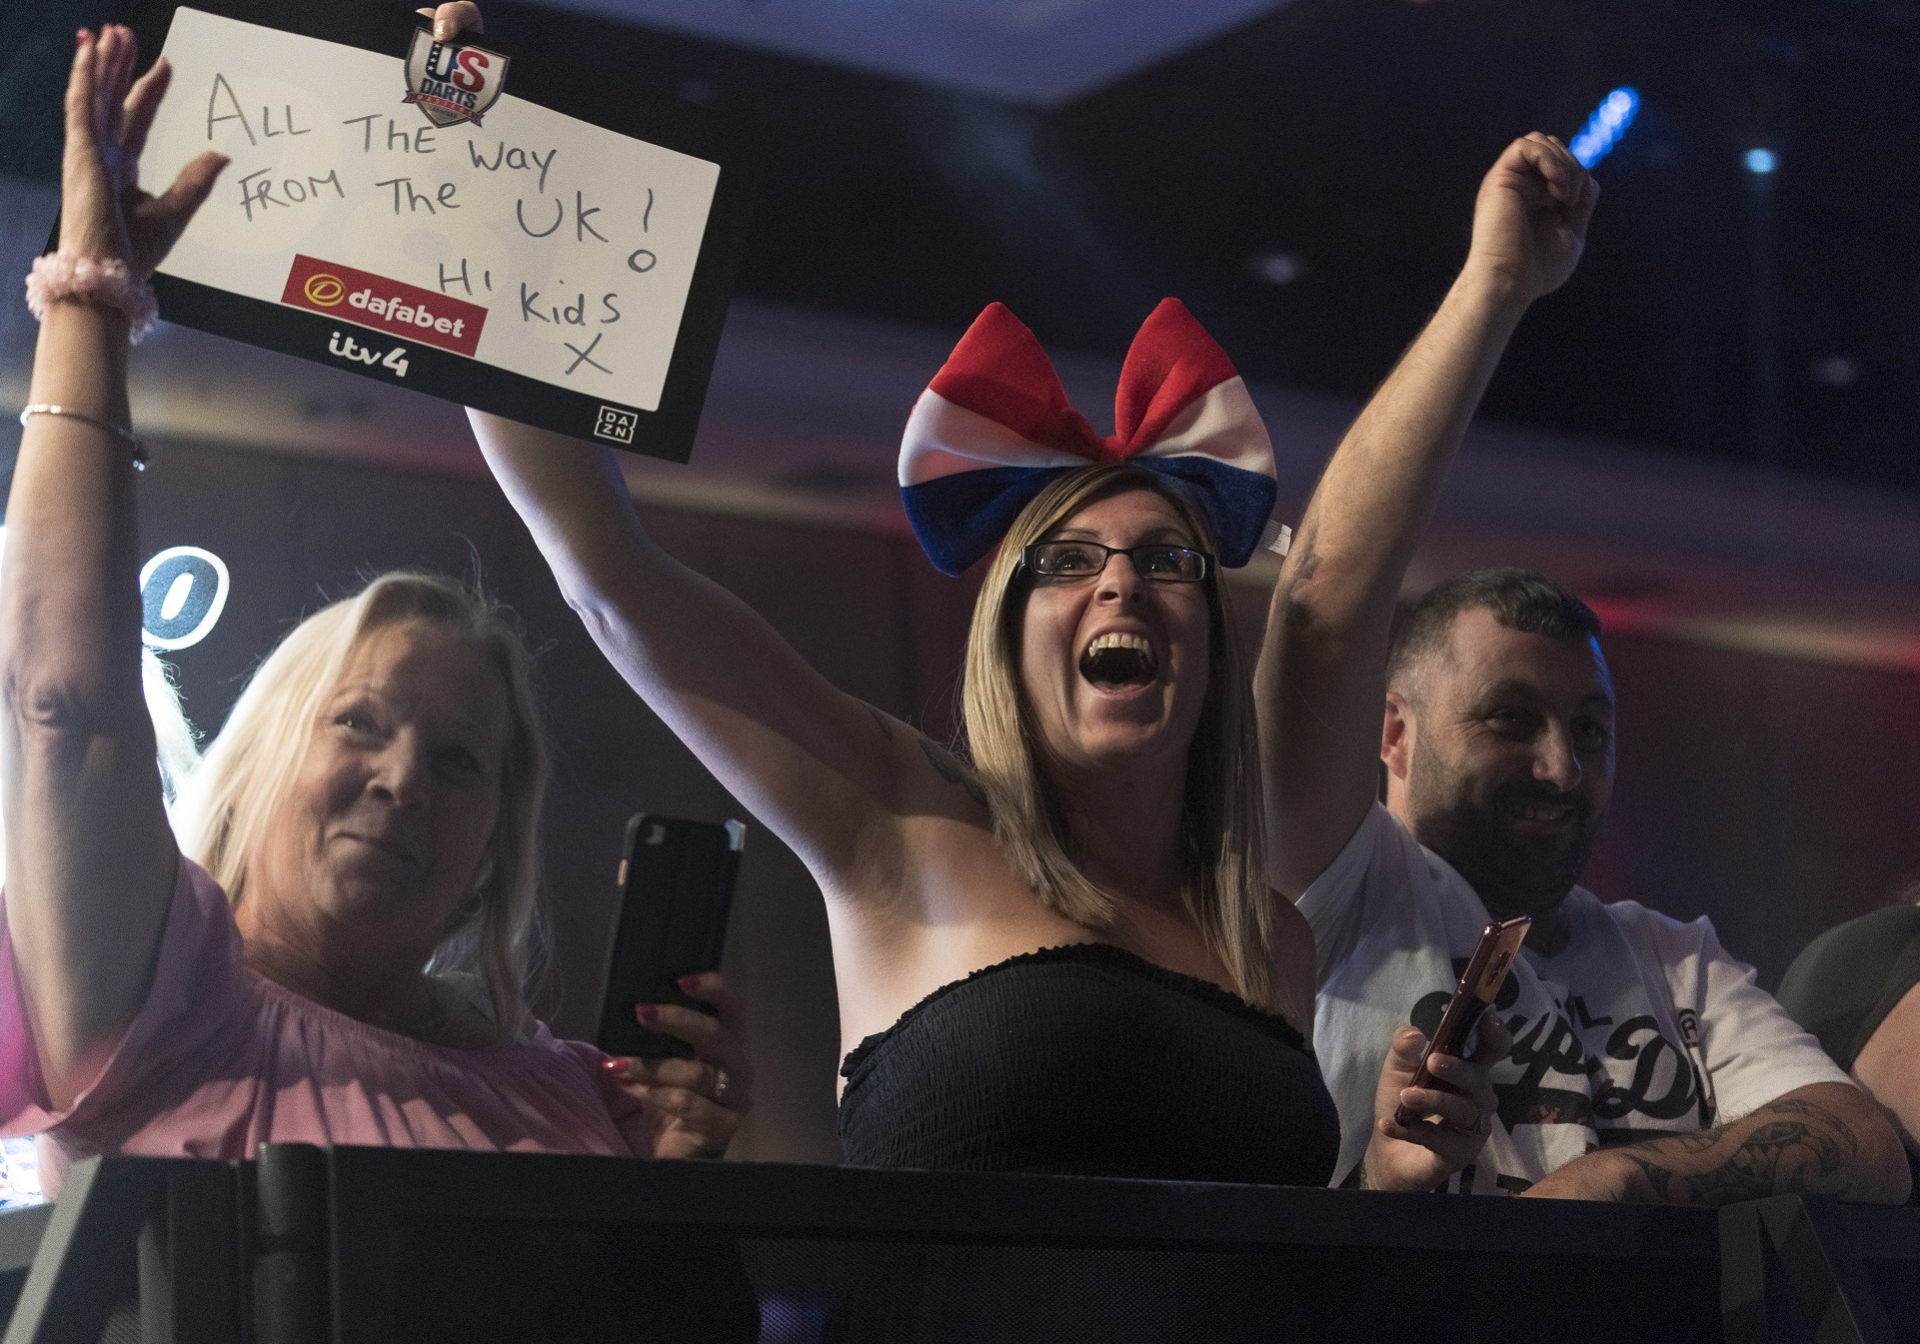 Fans at the Dafabet US Darts Masters